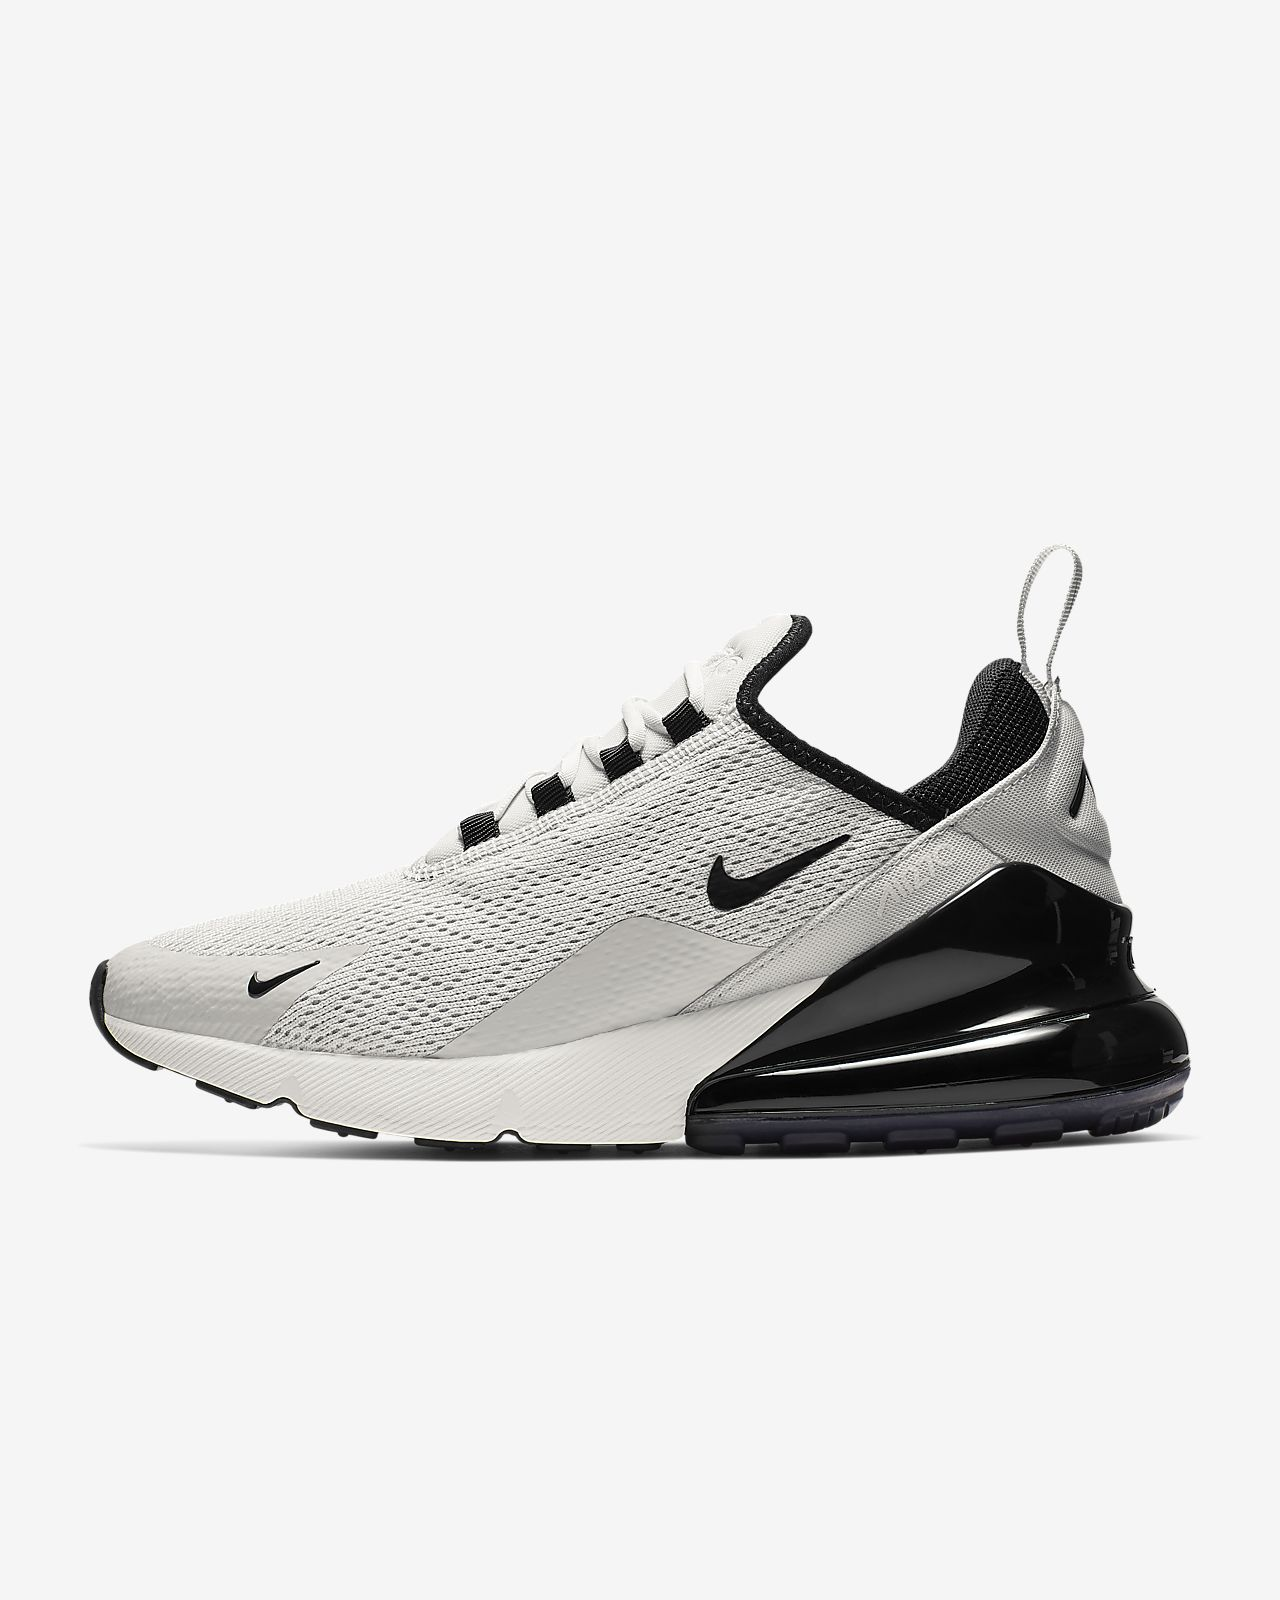 in stock cded4 f1cff Women s Shoe. Nike Air Max 270